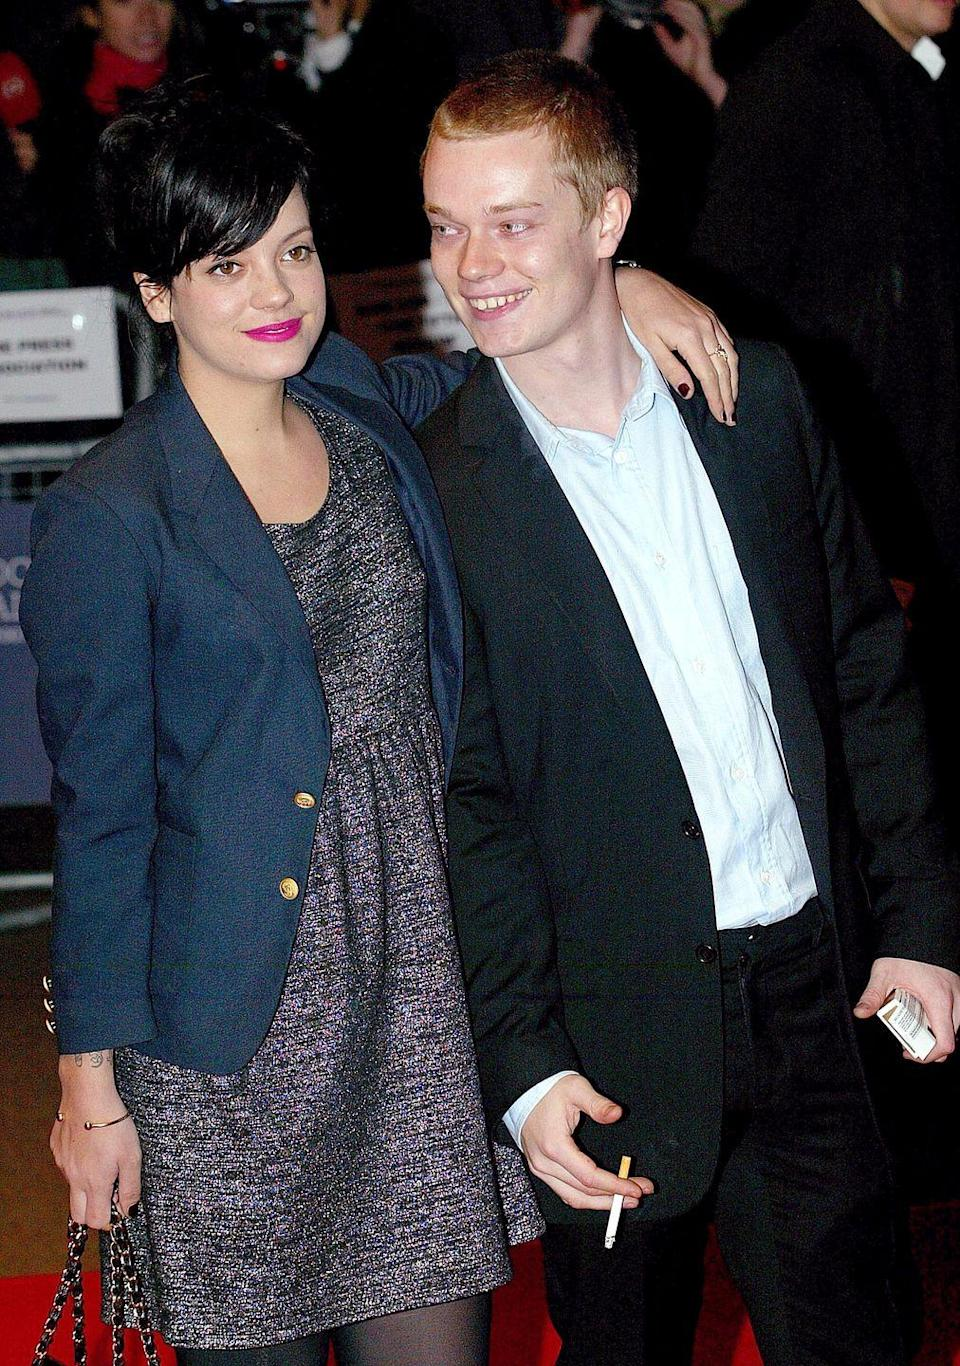 """<p>While Lily Allen and her younger brother have quite a few differences, they <em>do </em>share nearly identical noses and smiles. The singer's fans were blown away by pair's connection, <a href=""""https://twitter.com/thronesfacts/status/926011168162009088?lang=en"""" rel=""""nofollow noopener"""" target=""""_blank"""" data-ylk=""""slk:when it was revealed"""" class=""""link rapid-noclick-resp"""">when it was revealed</a> the rising <em>G</em><em>ame of Thrones </em>star was her brother. </p>"""